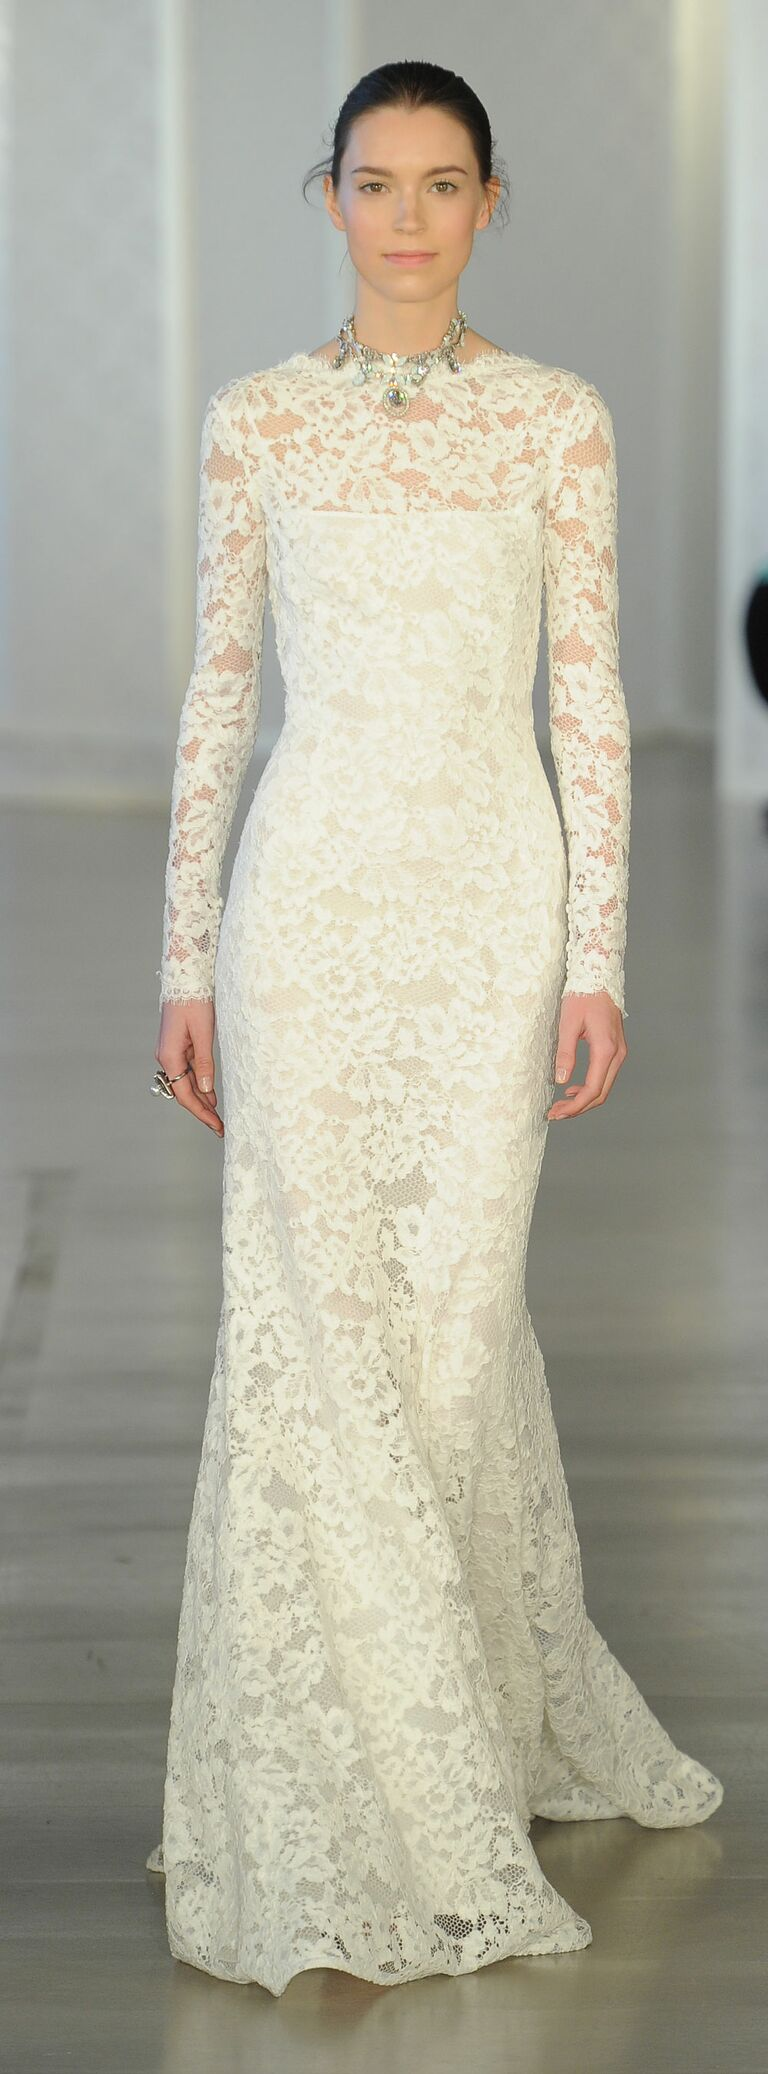 Oscar de la renta spring 2017 collection bridal fashion week photos oscar de la renta long sleeved lace appliqu sheath wedding dress from spring 2017 junglespirit Gallery